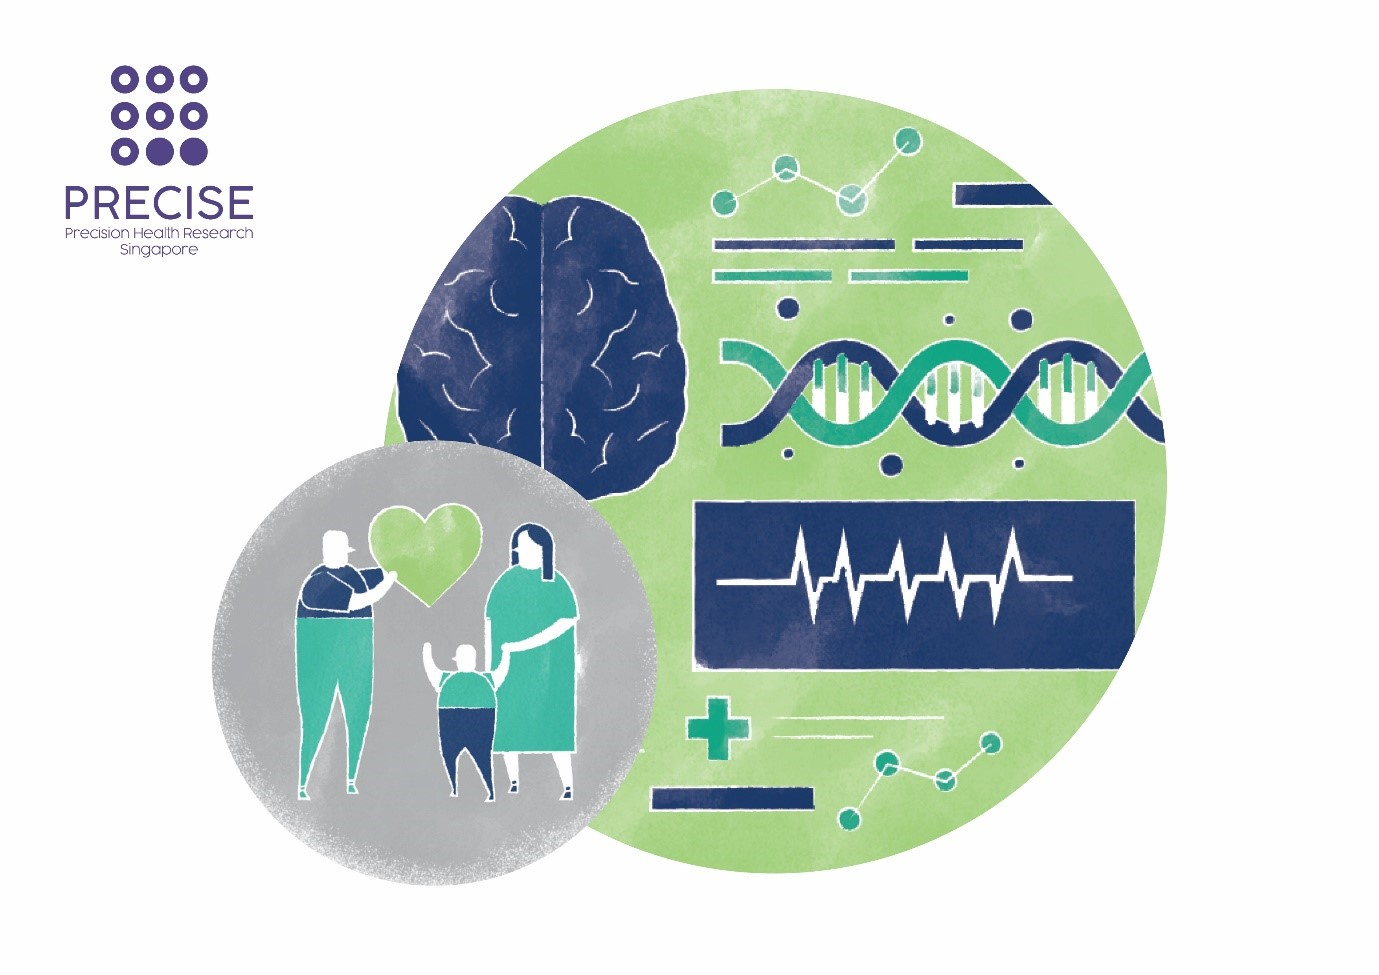 Media Release: Singapore launches next phase of National Precision Medicine Programme